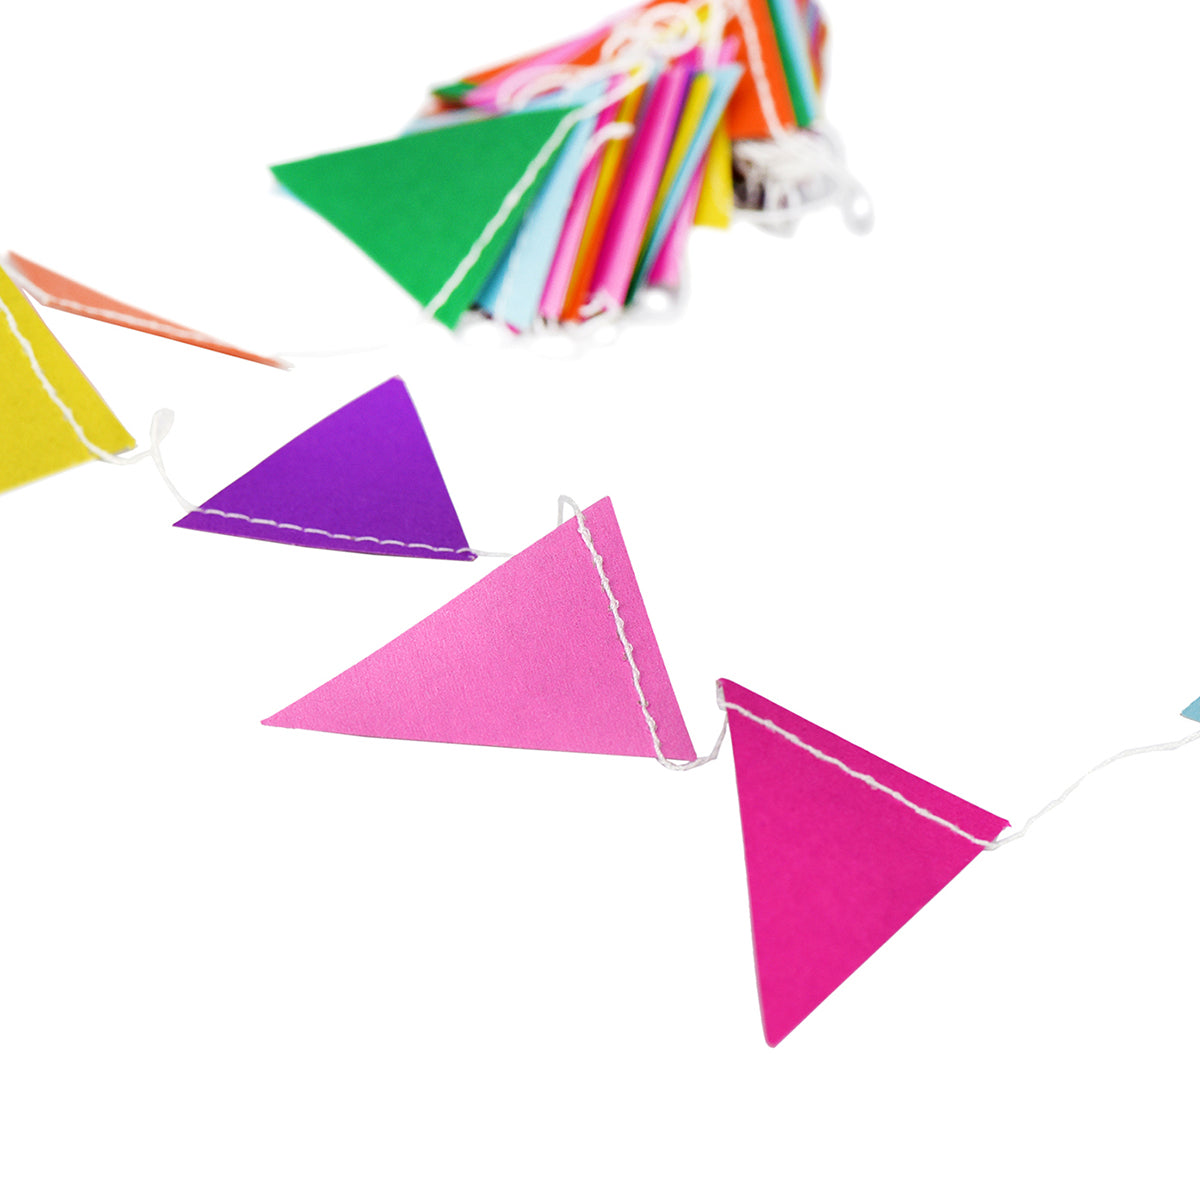 A string of colorful small Pennant Paper Garland show with a white background.